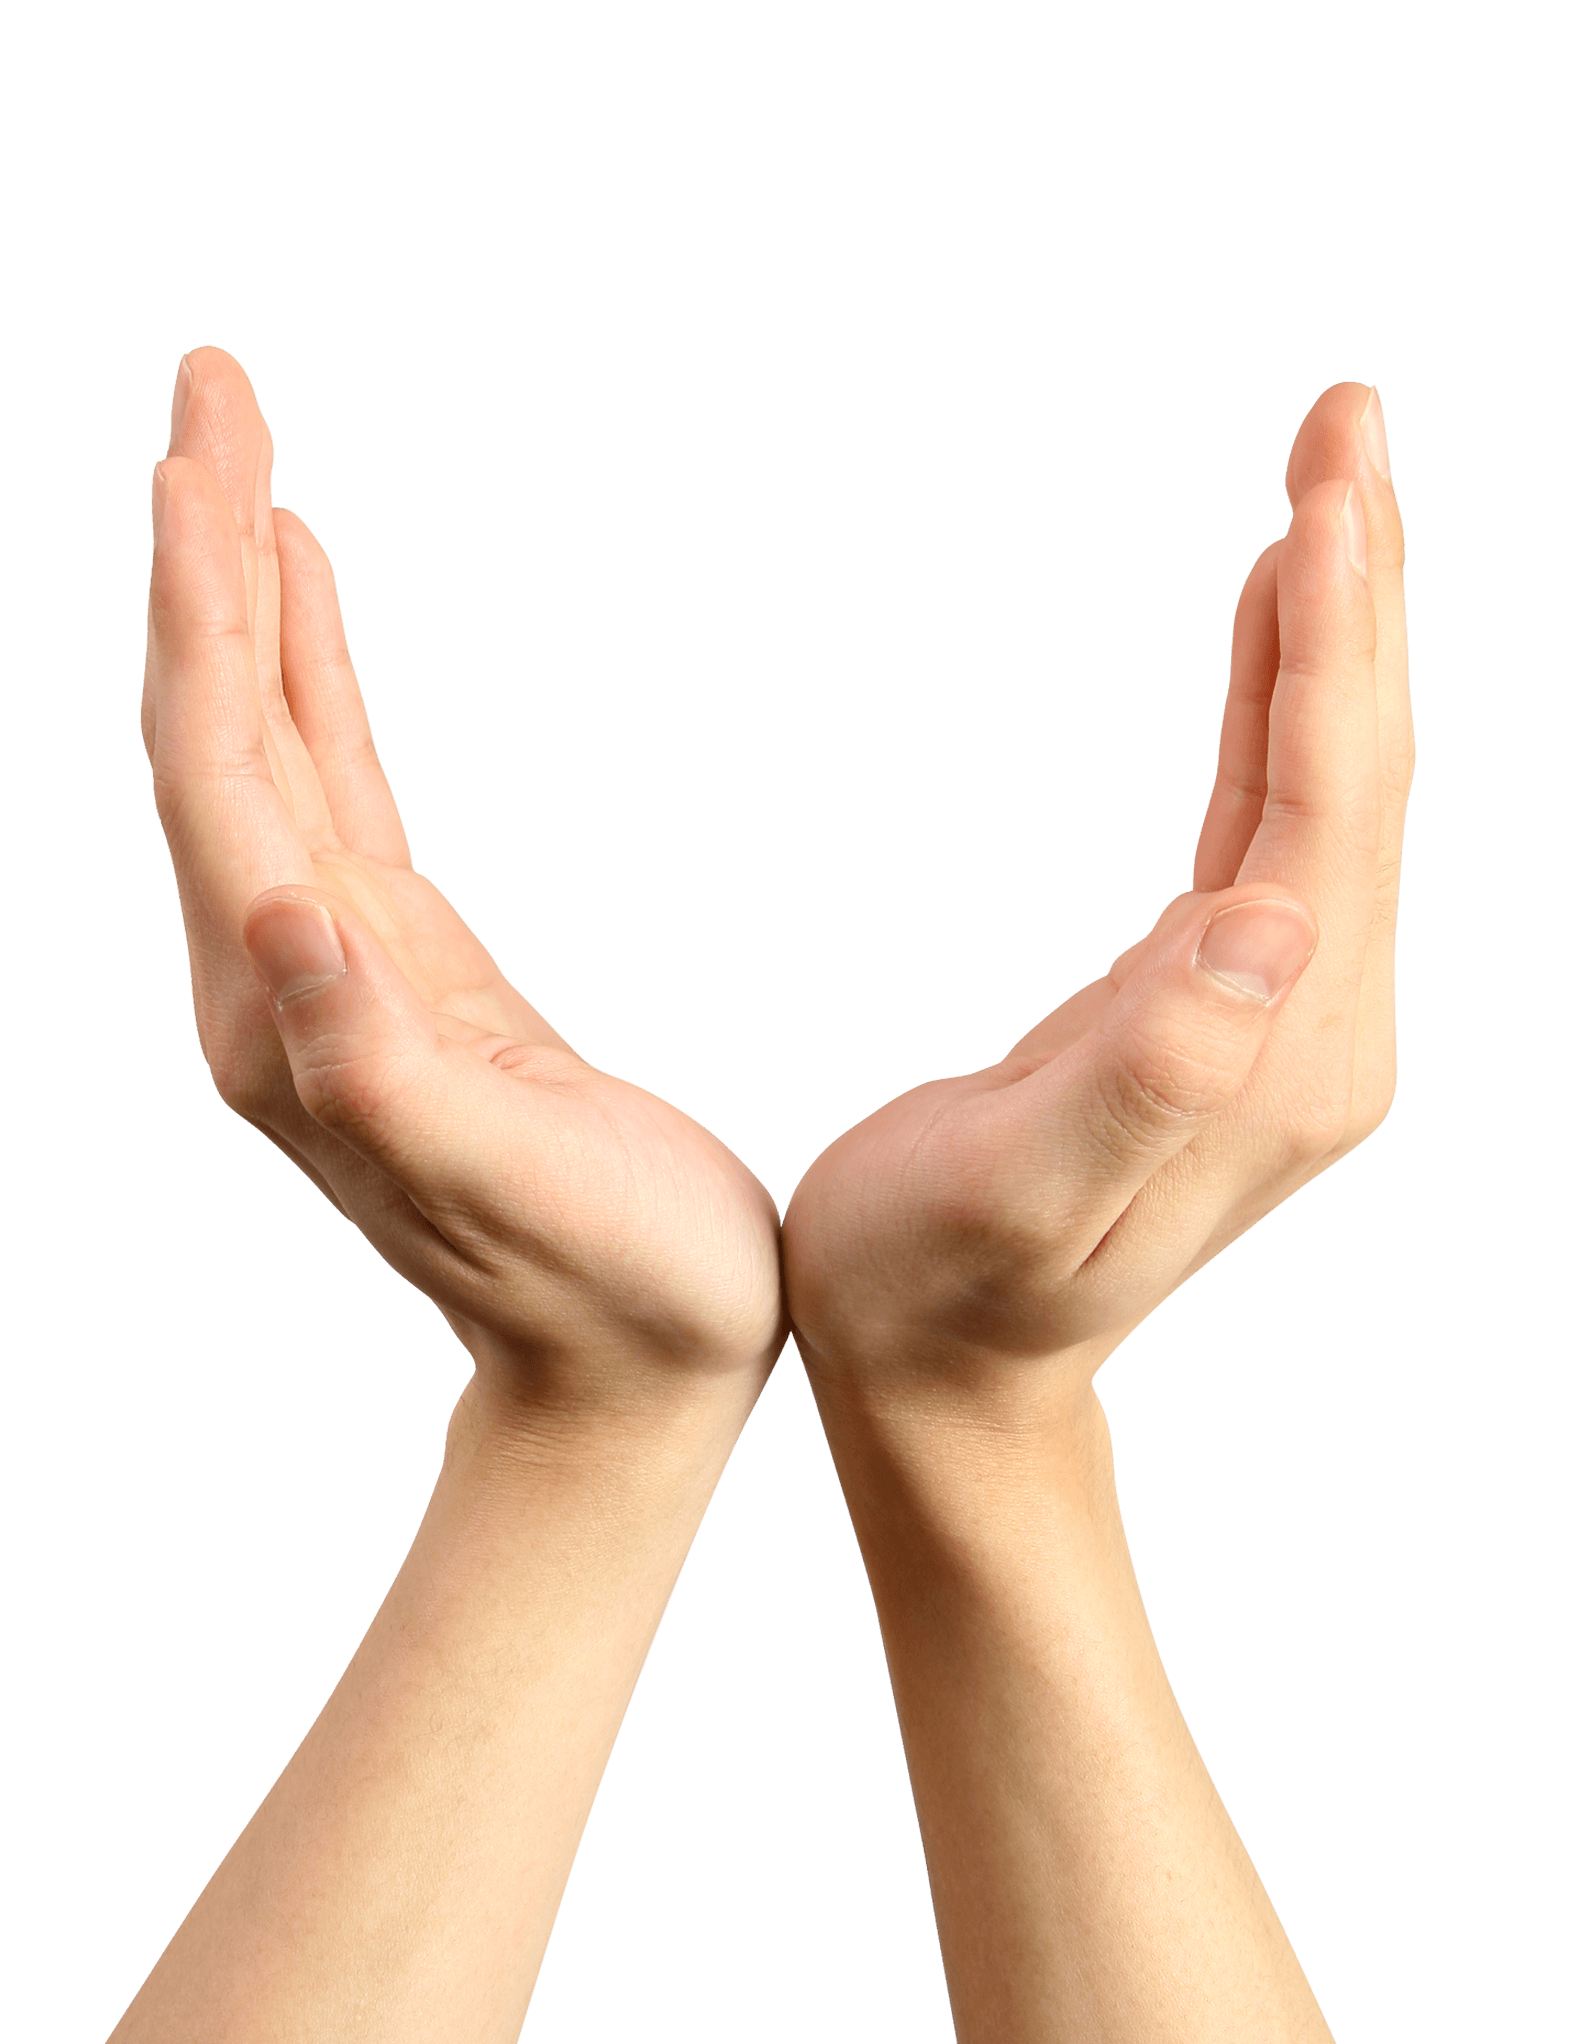 Download Hands Png Hand Image Hq Png Image Freepngimg Download hands png images transparent backgrounds pictures from the below gallery. hands png hand image hq png image